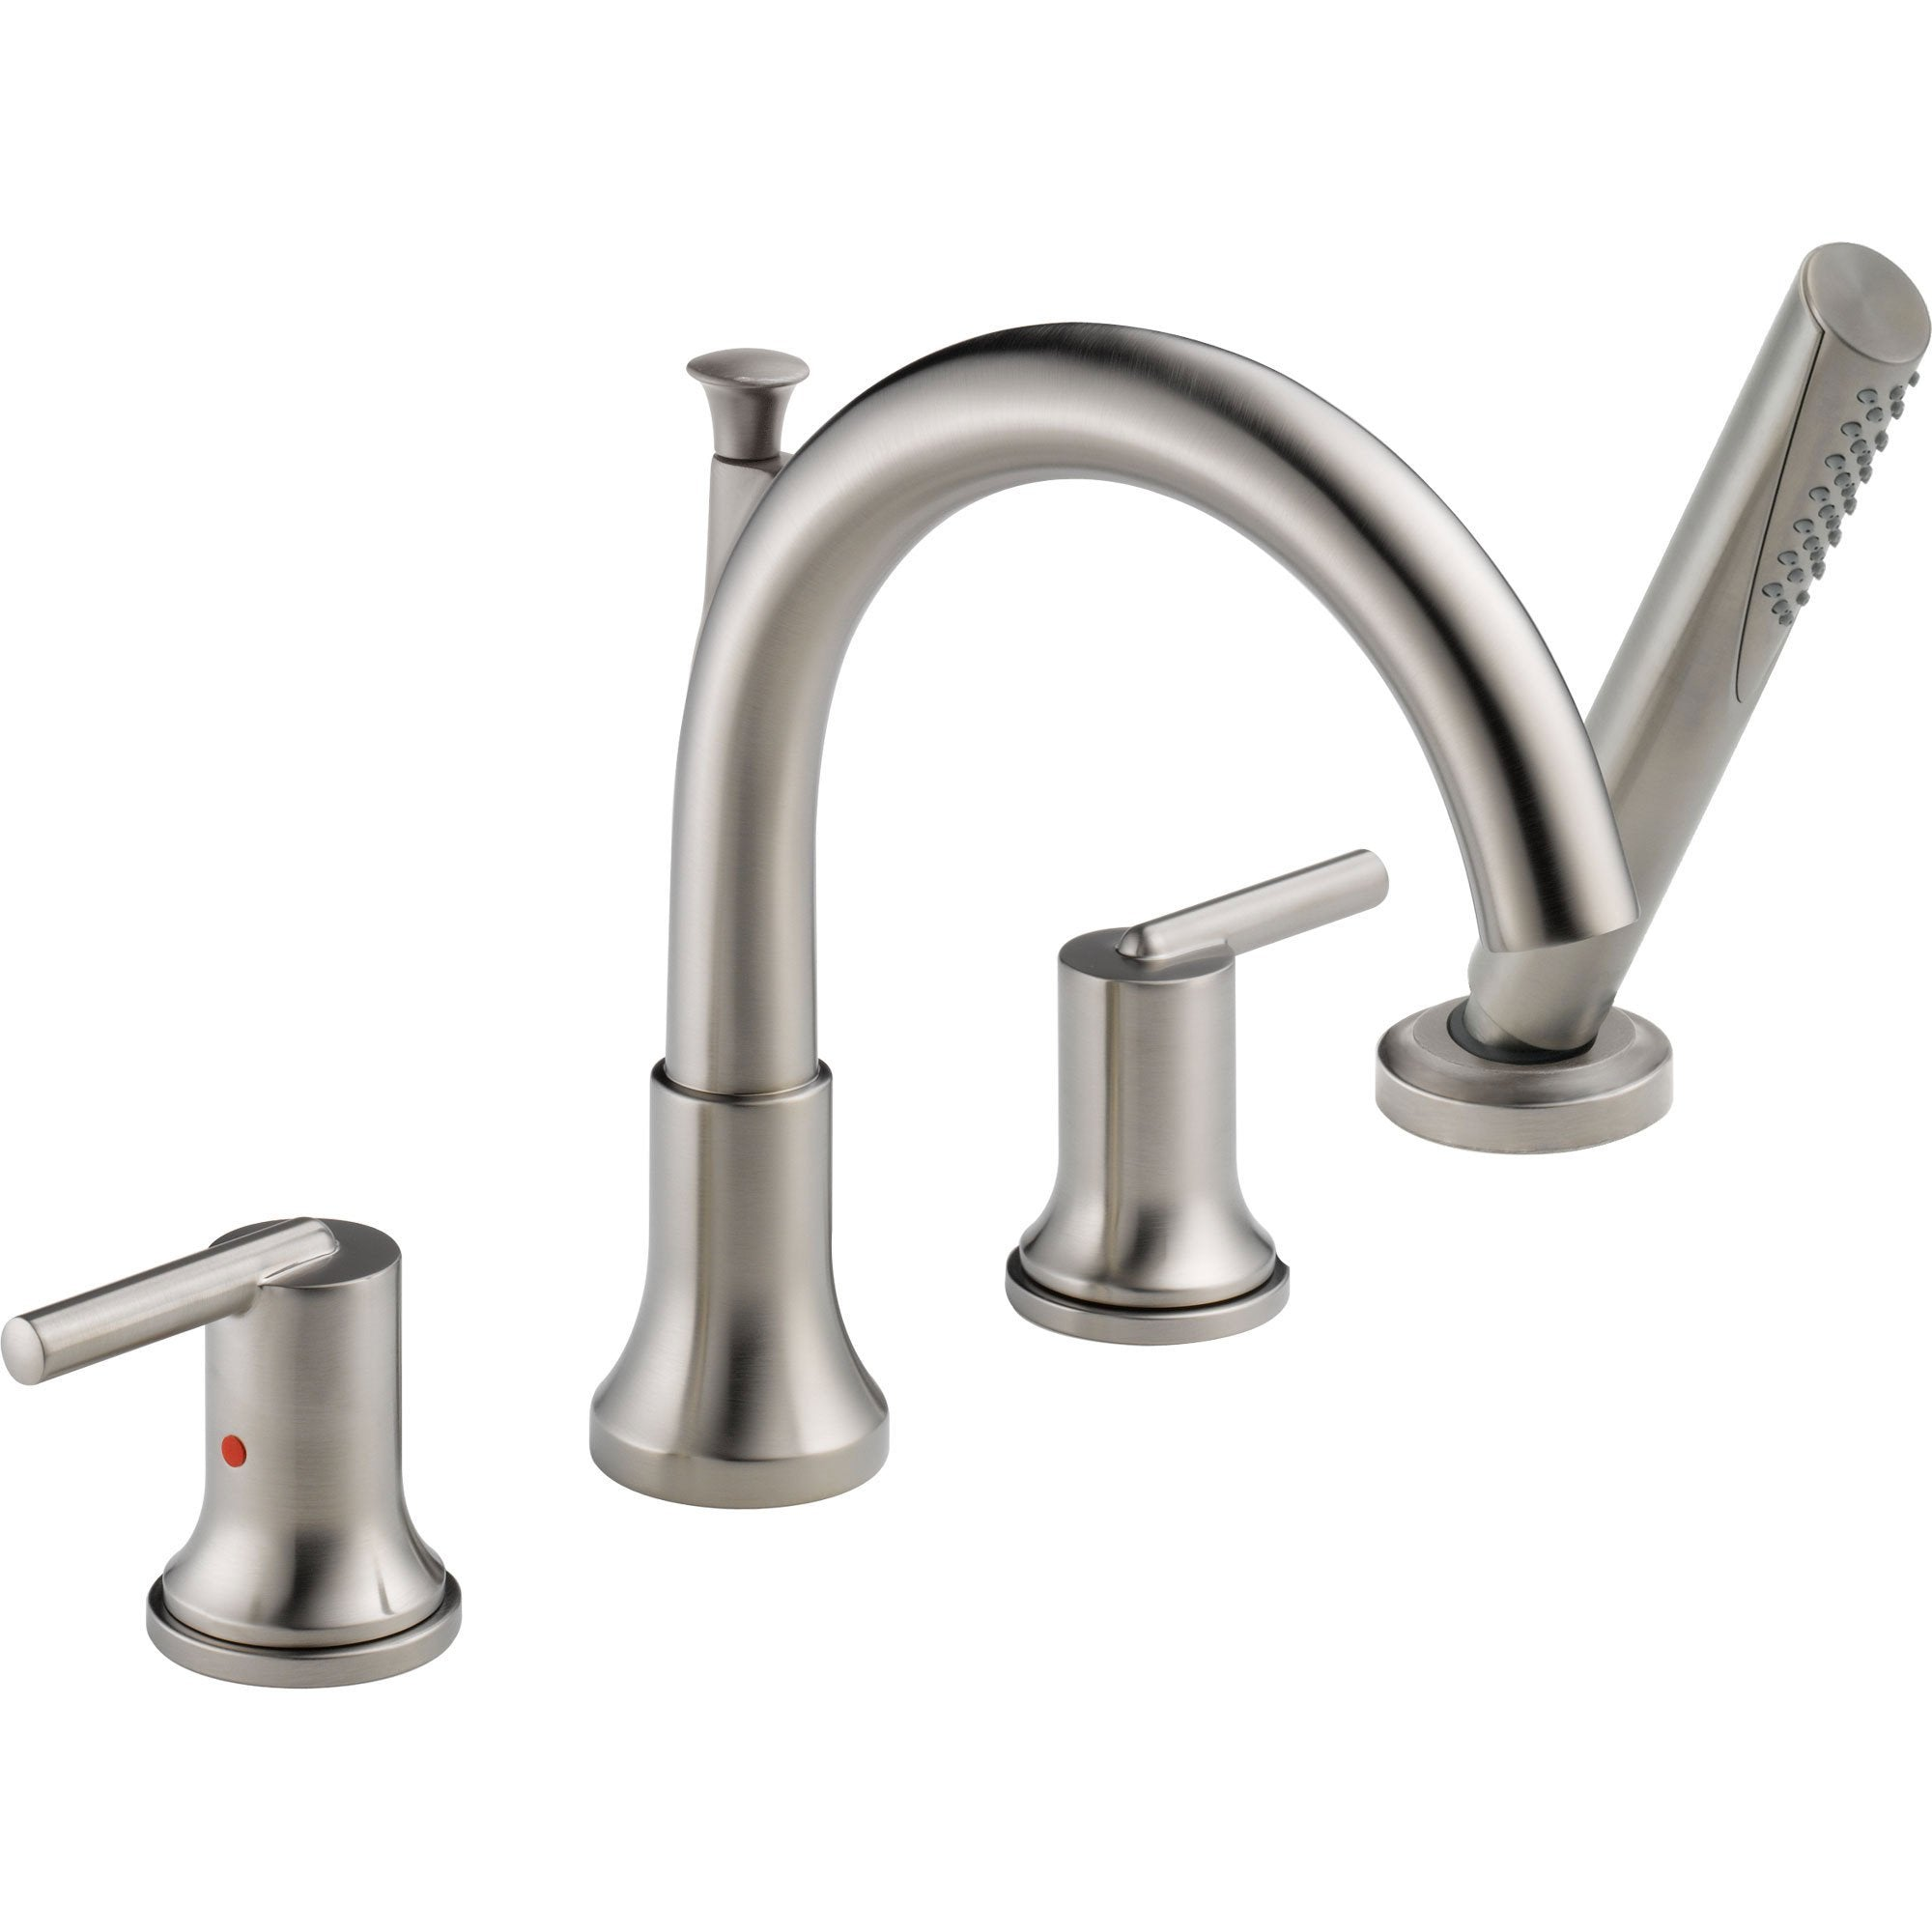 Delta Trinsic Stainless Steel Finish Roman Tub Faucet Trim w/ Hand Shower 590146